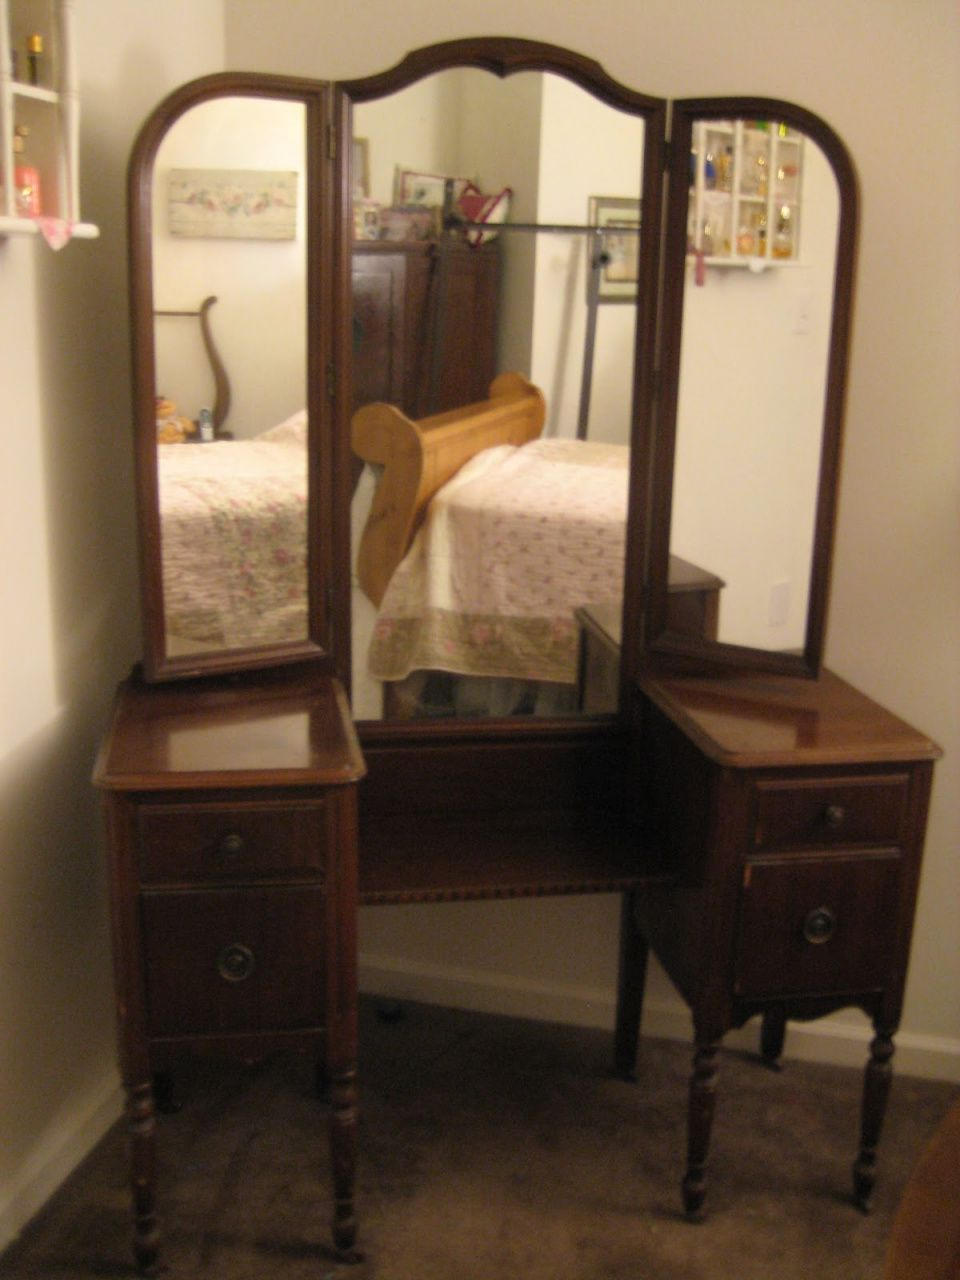 Antique Bathroom Vanity Mirrors